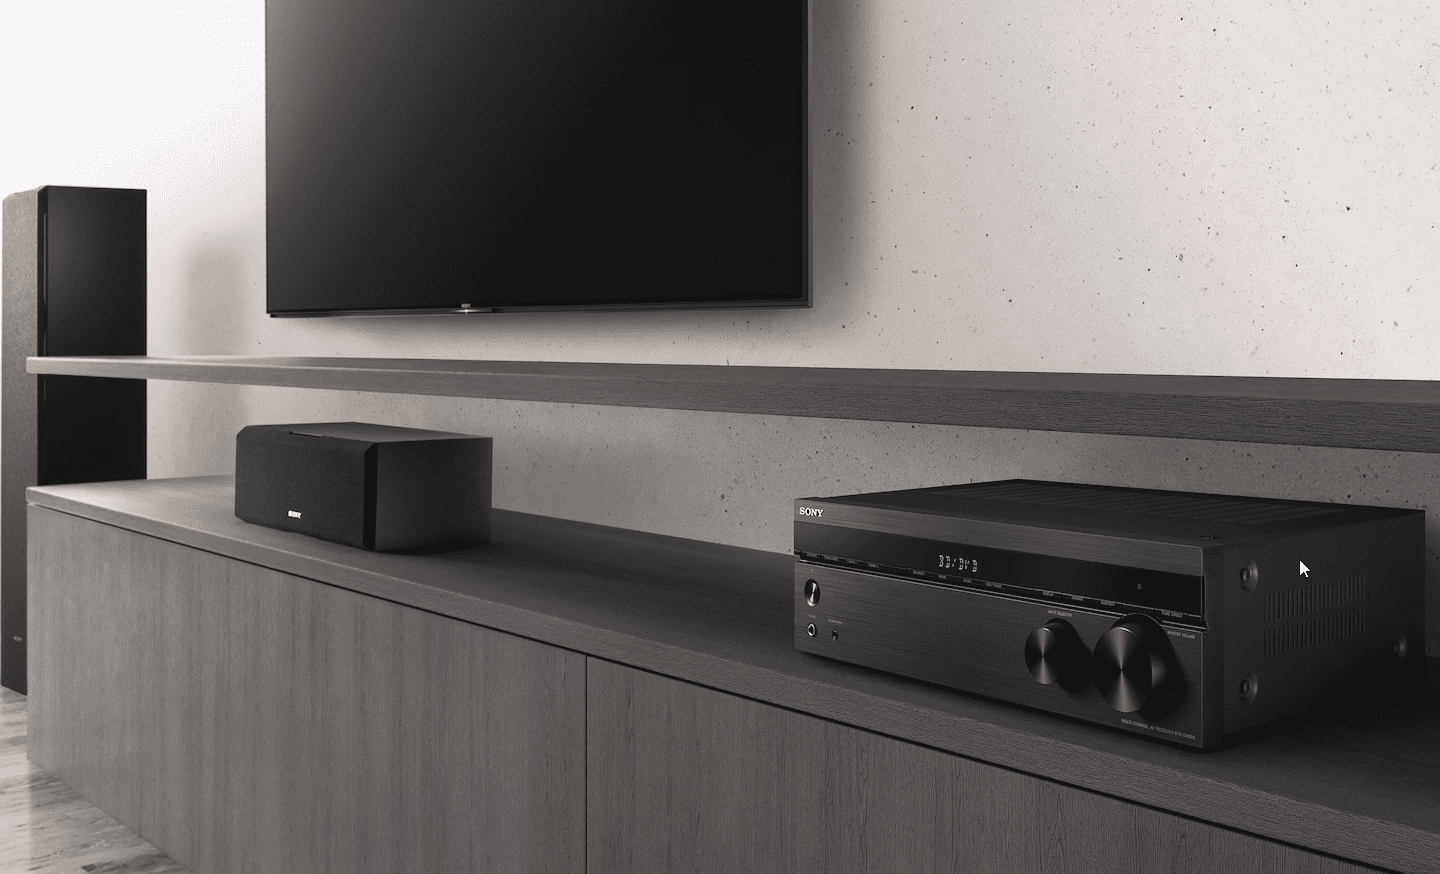 The 7 Best Budget-Friendly Stereo Receivers of 2019